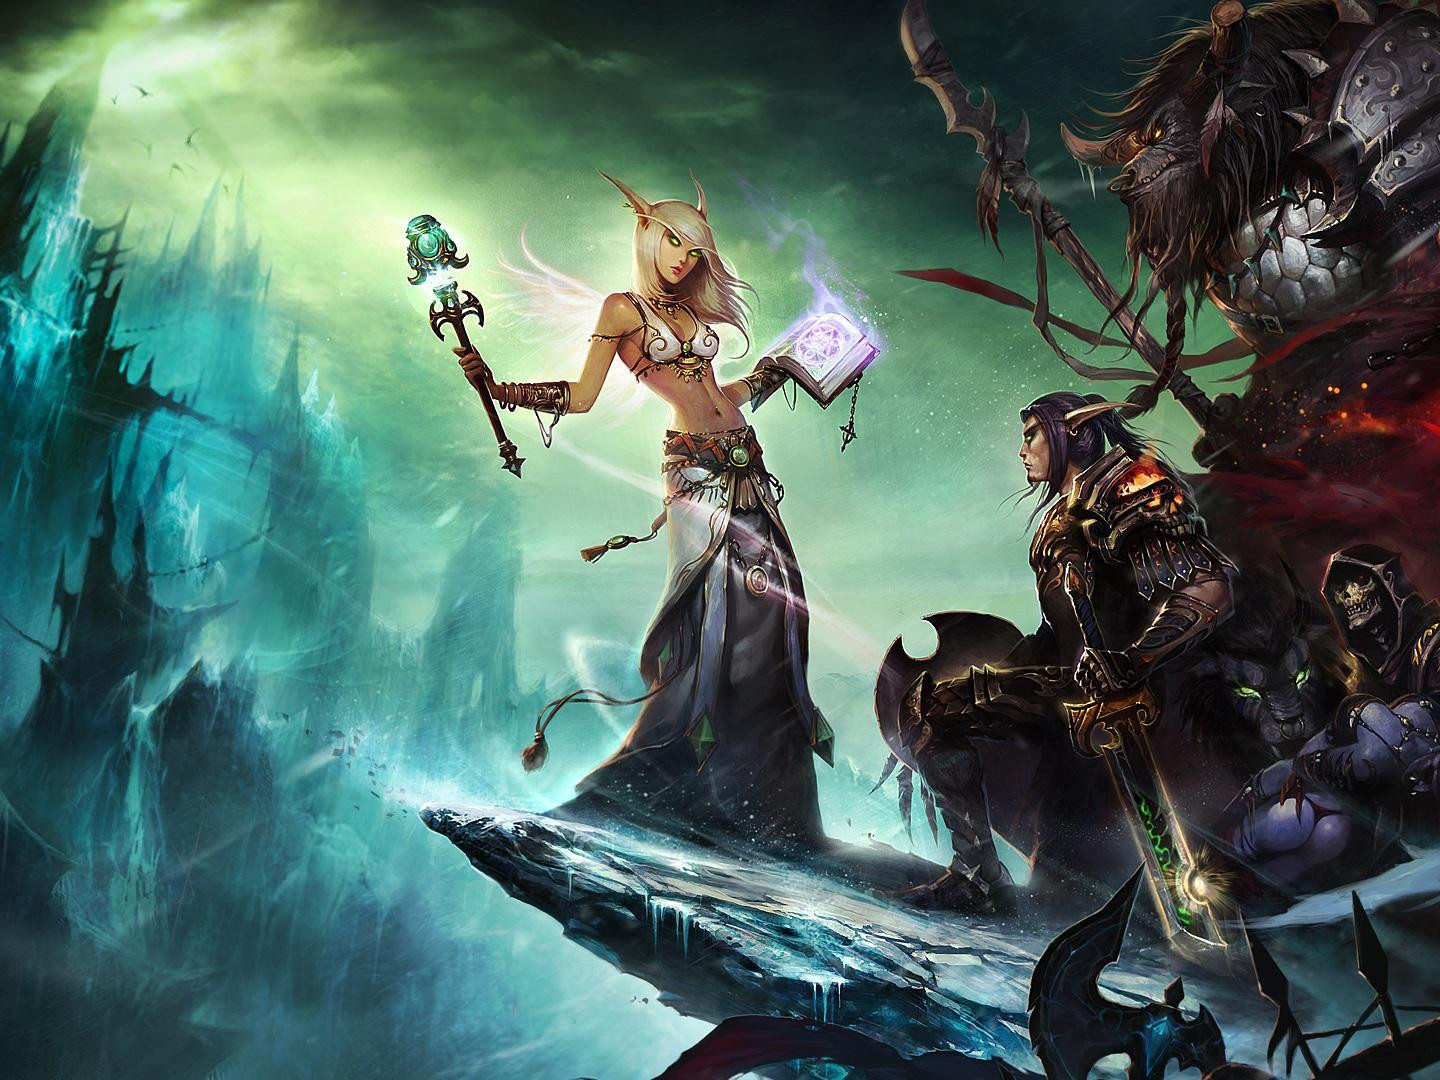 Libros De World Of Warcraft Fondo De Pantalla De World Of Warcraft Hembra Cielo